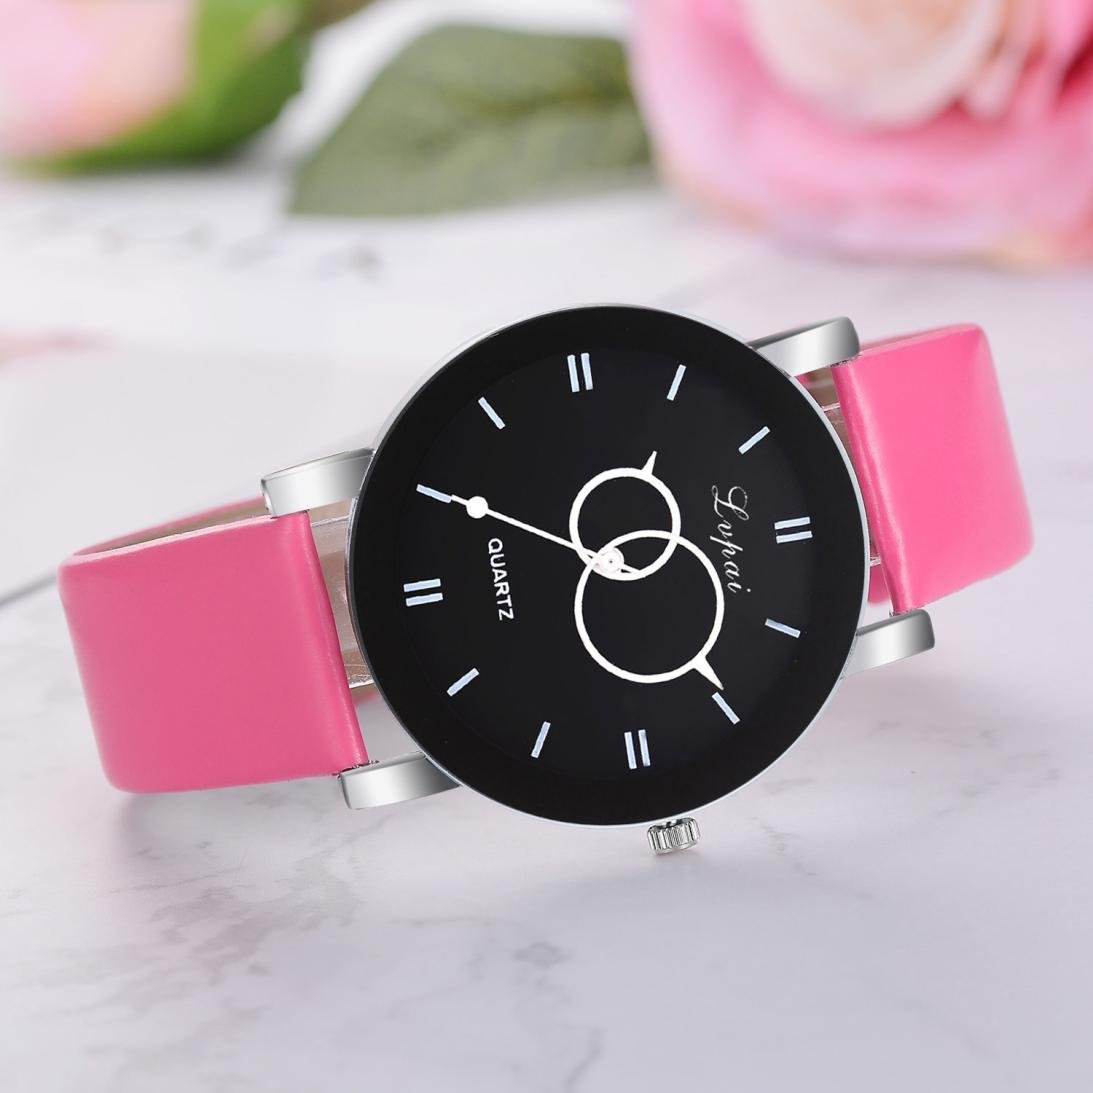 Amazon.com: Womens Watches Ultra-thin Classic Analog Quartz Fashion Wrist Watch with Leather strap,GINELO (Pink): Cell Phones & Accessories